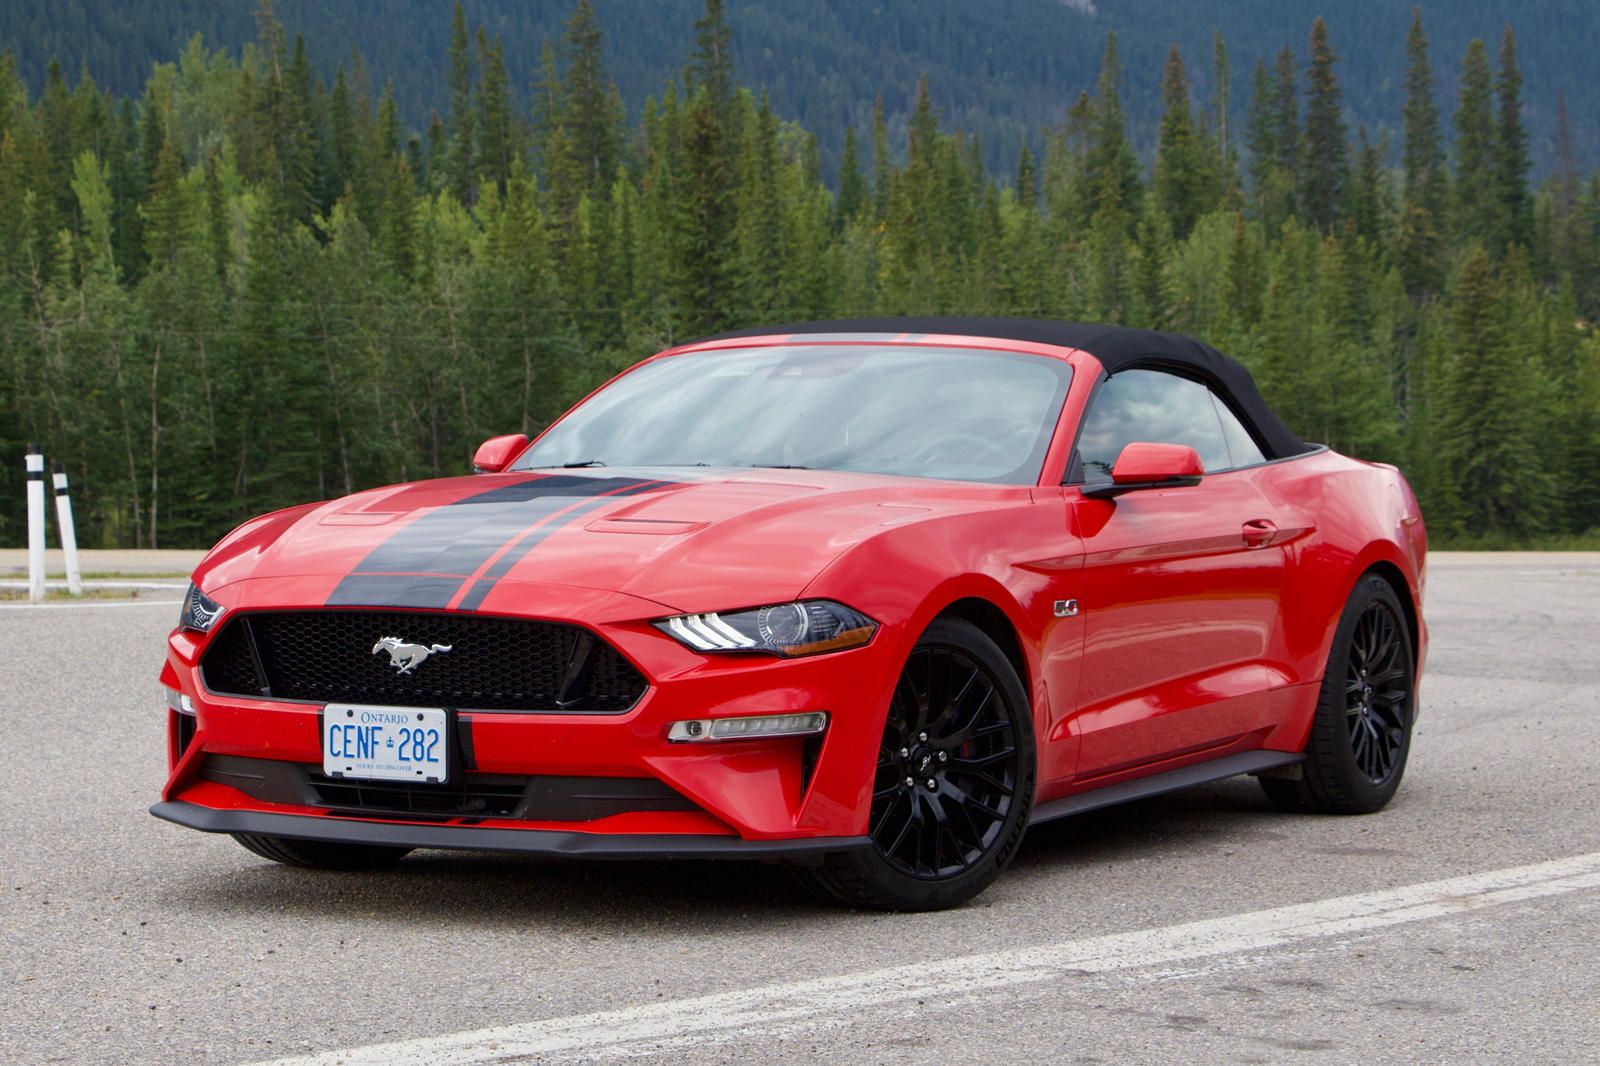 2020 Ford Mustang Gt Convertible Review Trims Specs Price New Interior Features Exterior Design And Specifications Carbuzz